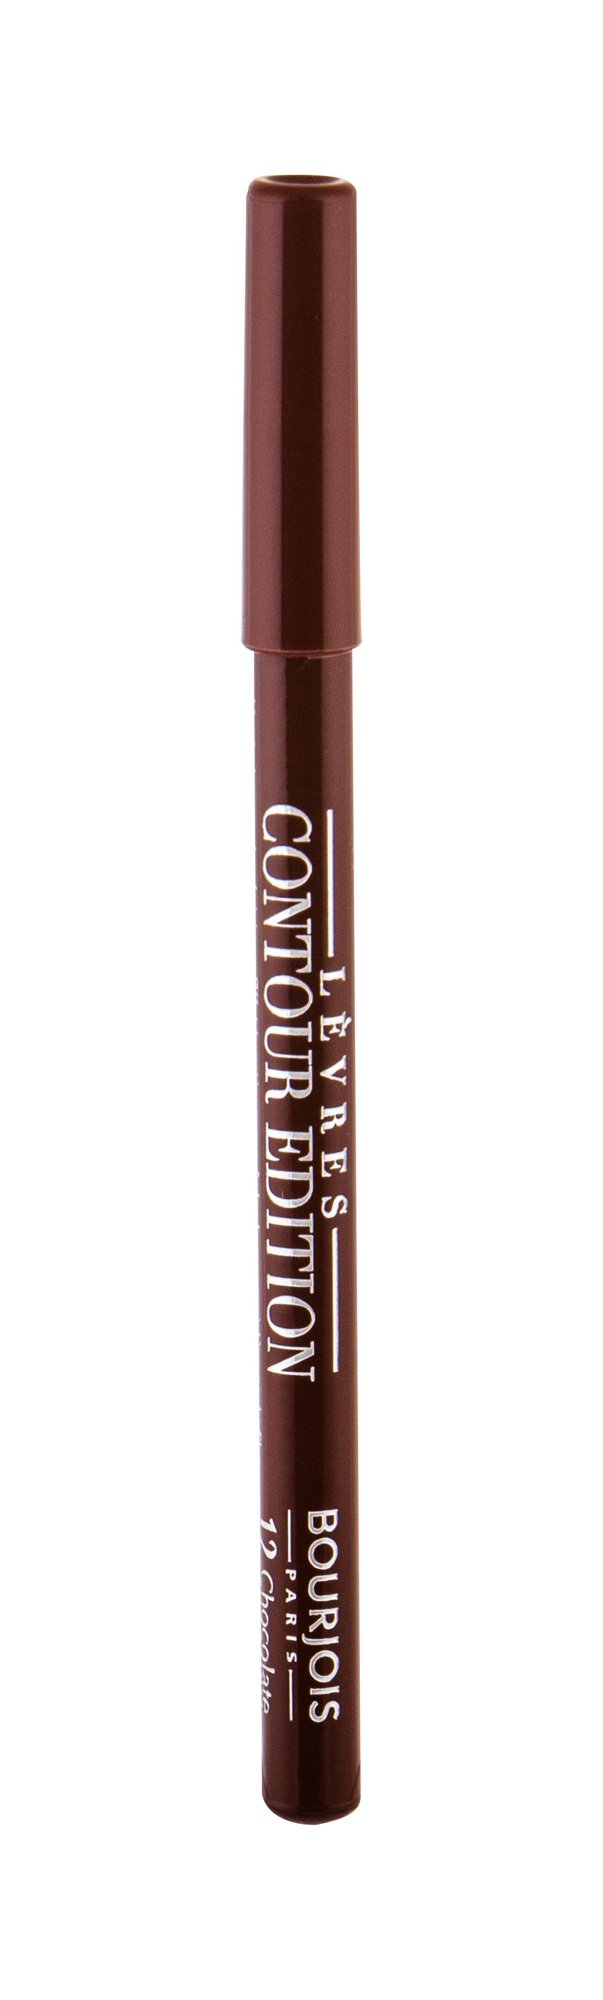 BOURJOIS Paris Contour Edition Lip Pencil 1,14ml 12 Chocolate Chip